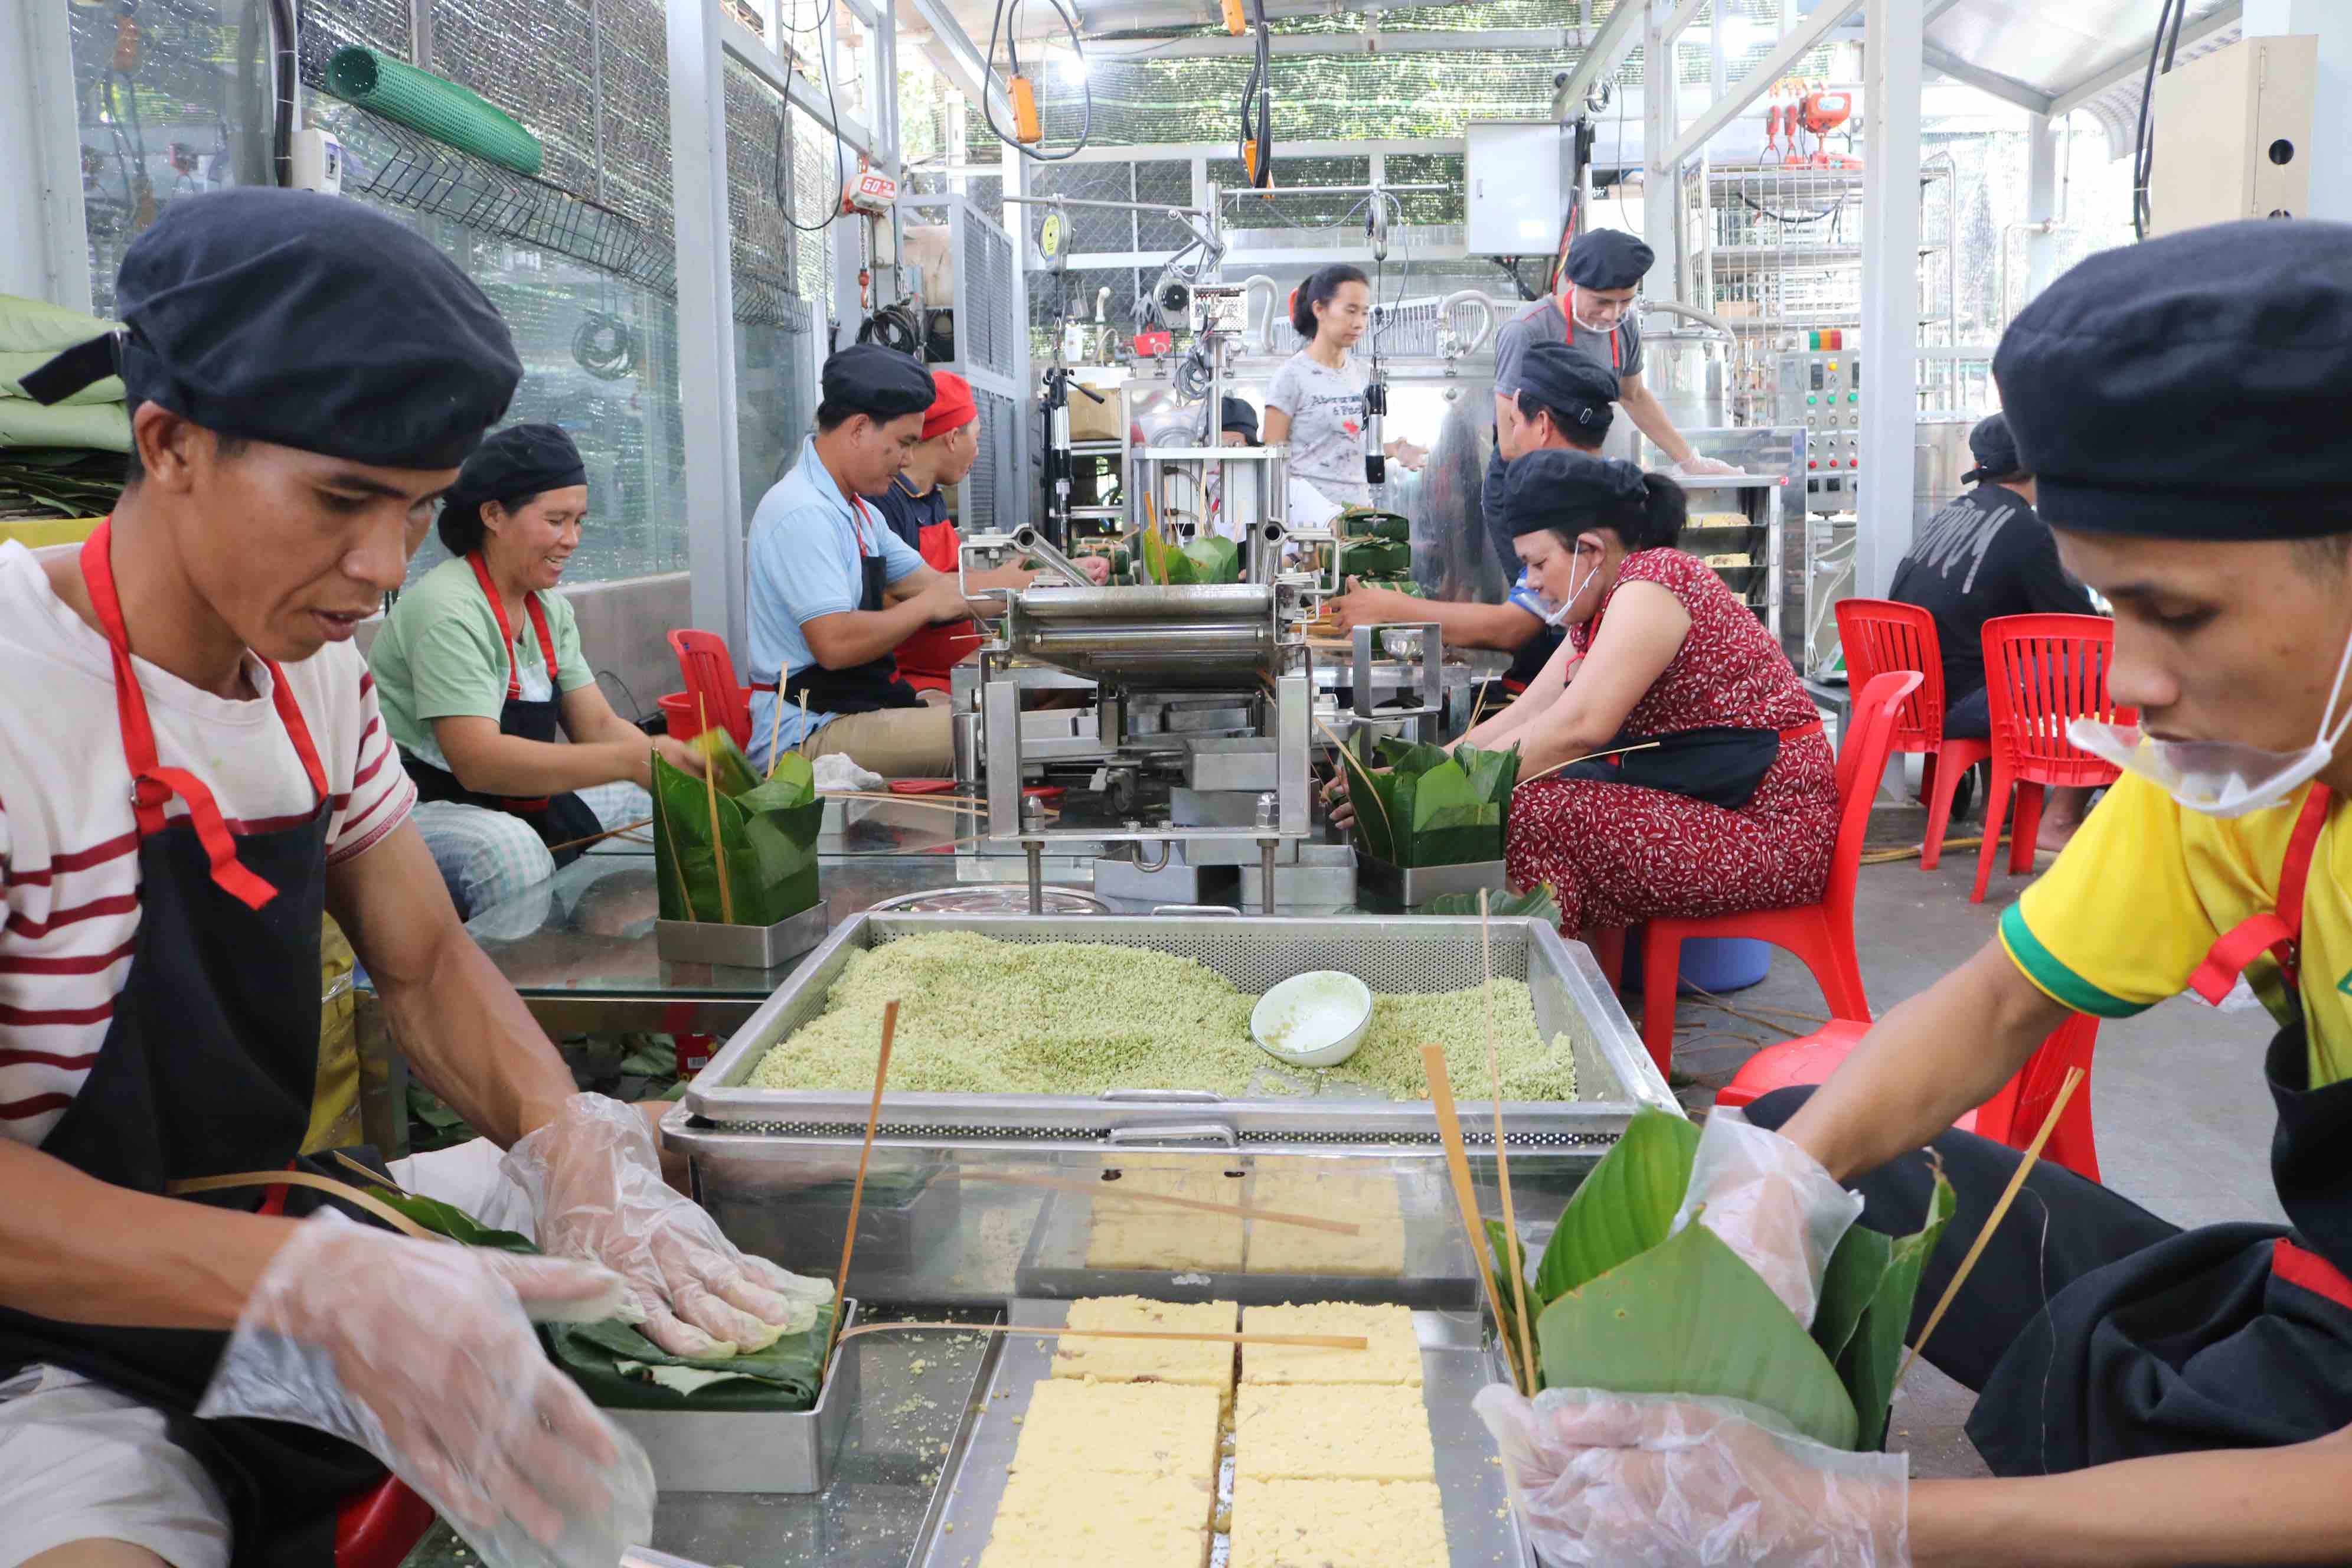 In the photo, the staffs at Pham Khac Tuong's facility wrap 'banh chung' with the help of the machine line at Thu Duc City. Photo: Hoang An / Tuoi Tre